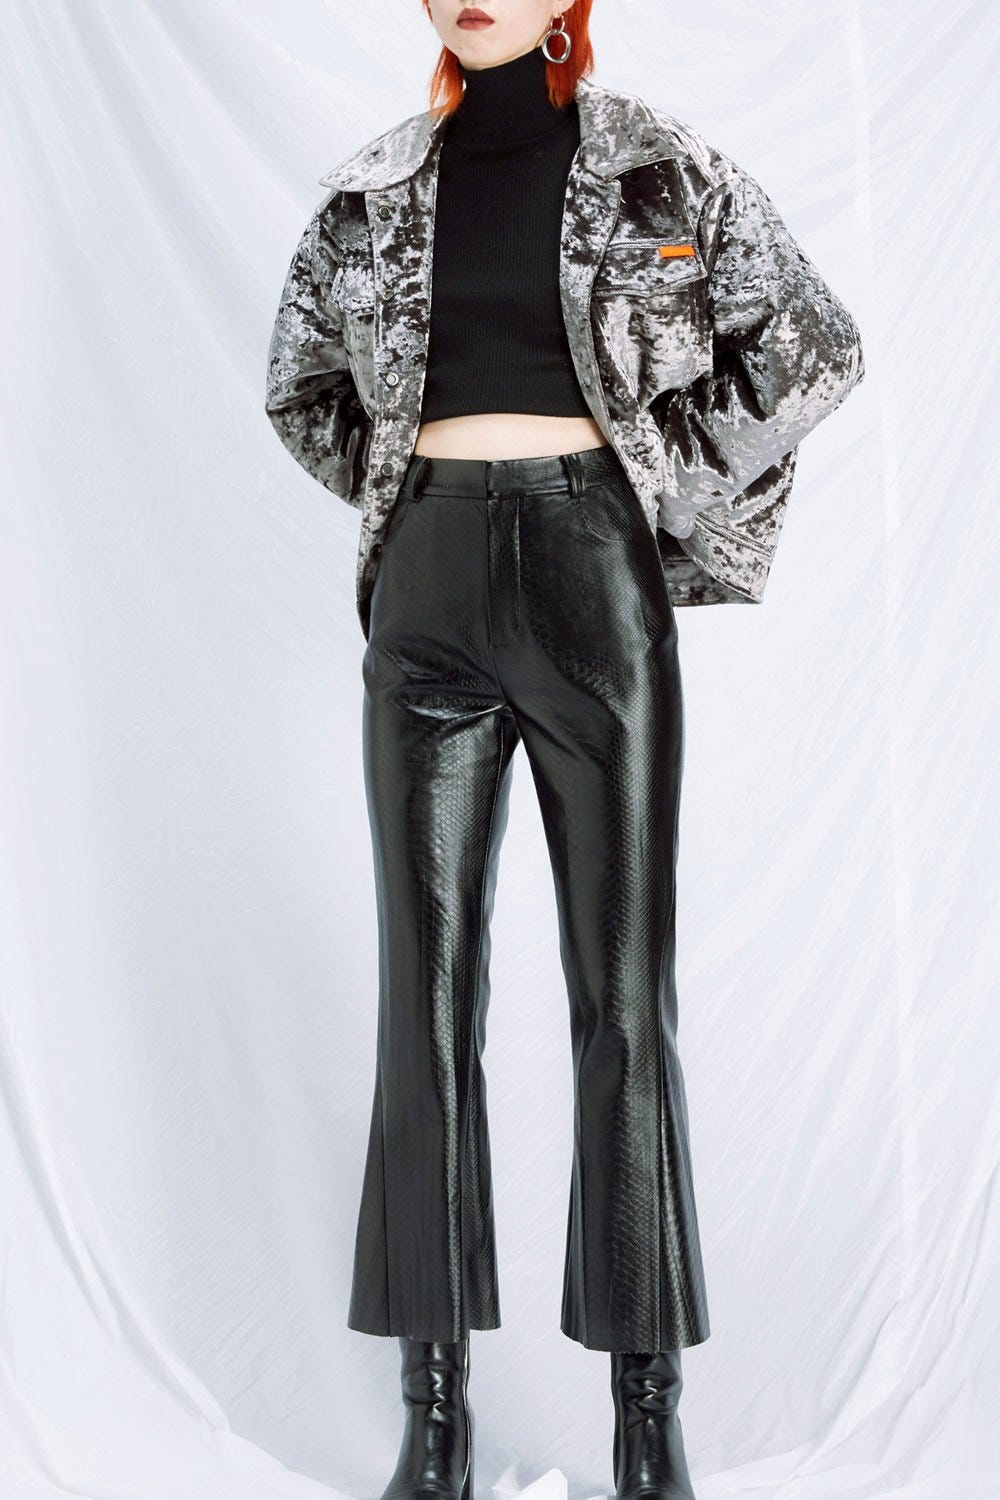 66f9397b878a5 Leather Pants Trend Spring 2019, Vegan & Genuine Option